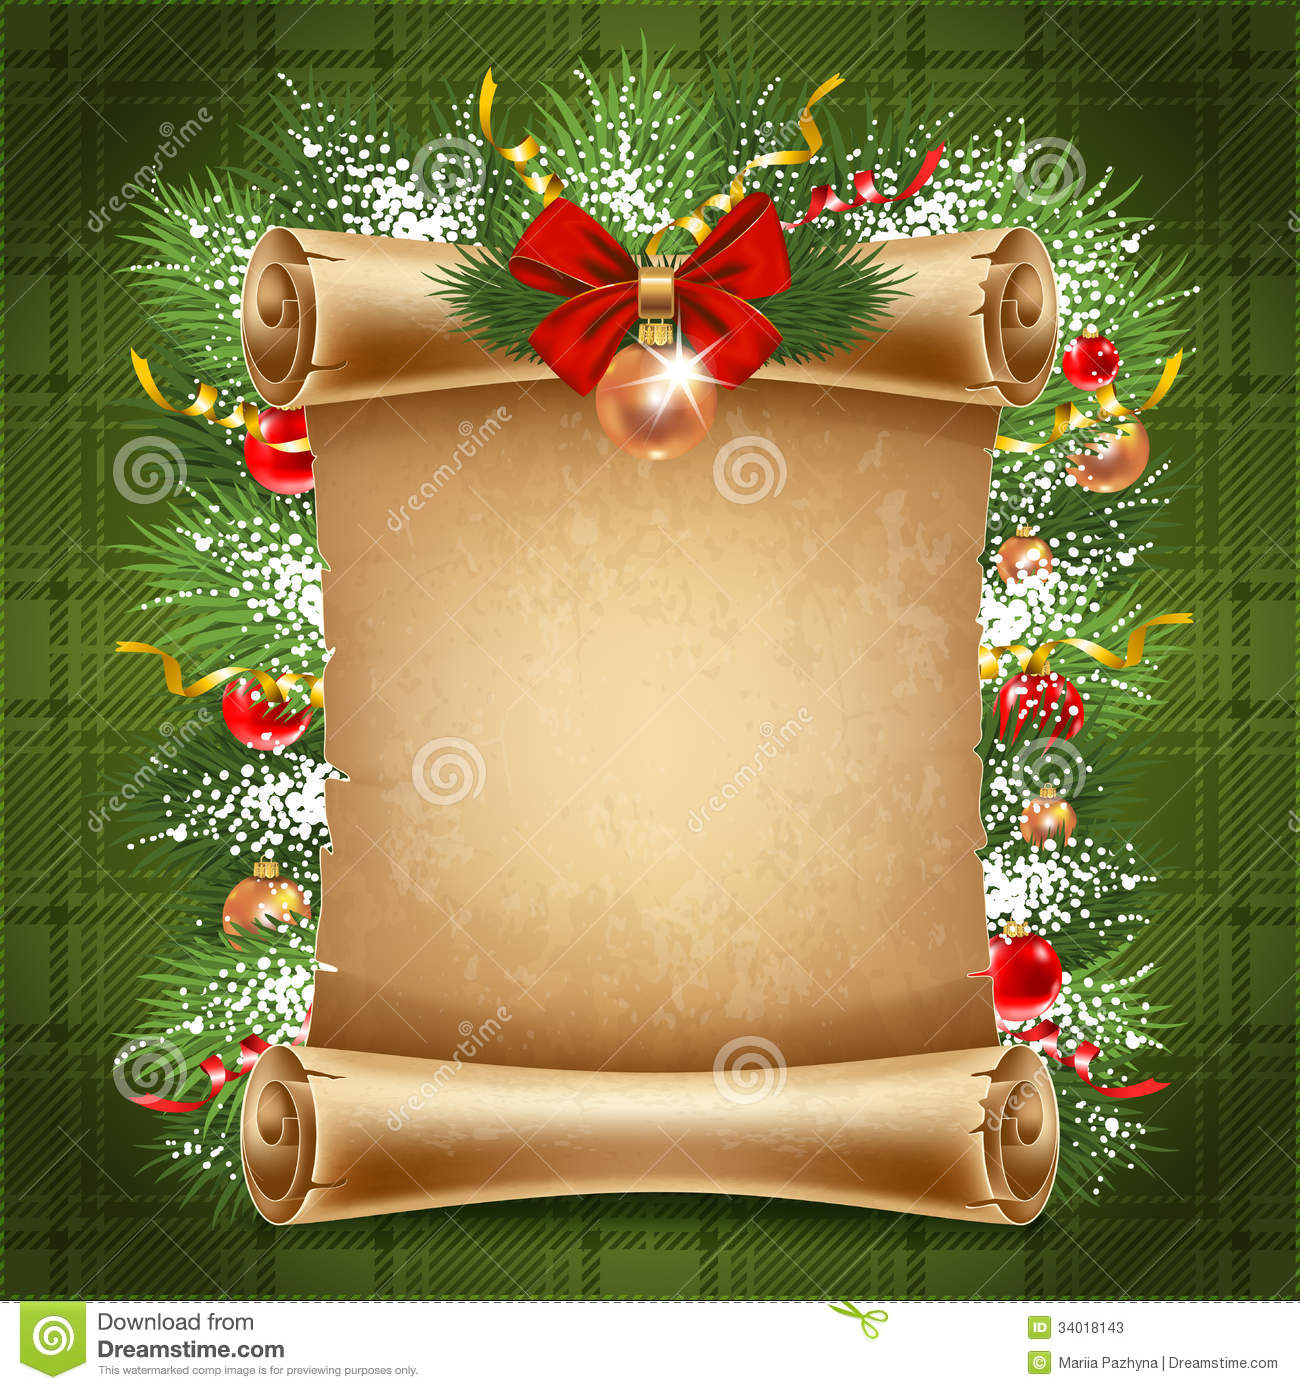 Christmas Decorations Background Pictures: Christmas Background Stock Photos